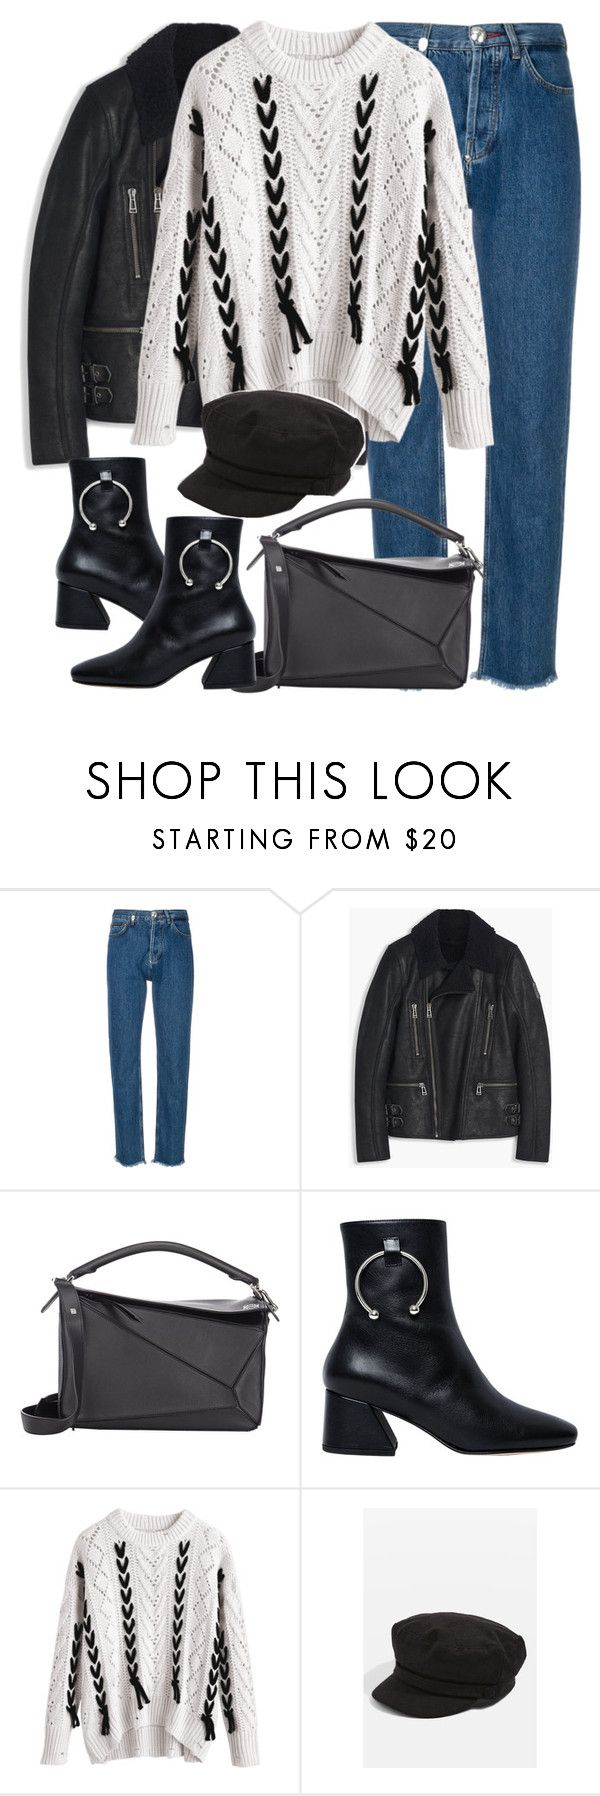 """""""Untitled #3265"""" by elenaday on Polyvore featuring Philipp Plein, Loewe, Dorateymur and Topshop"""